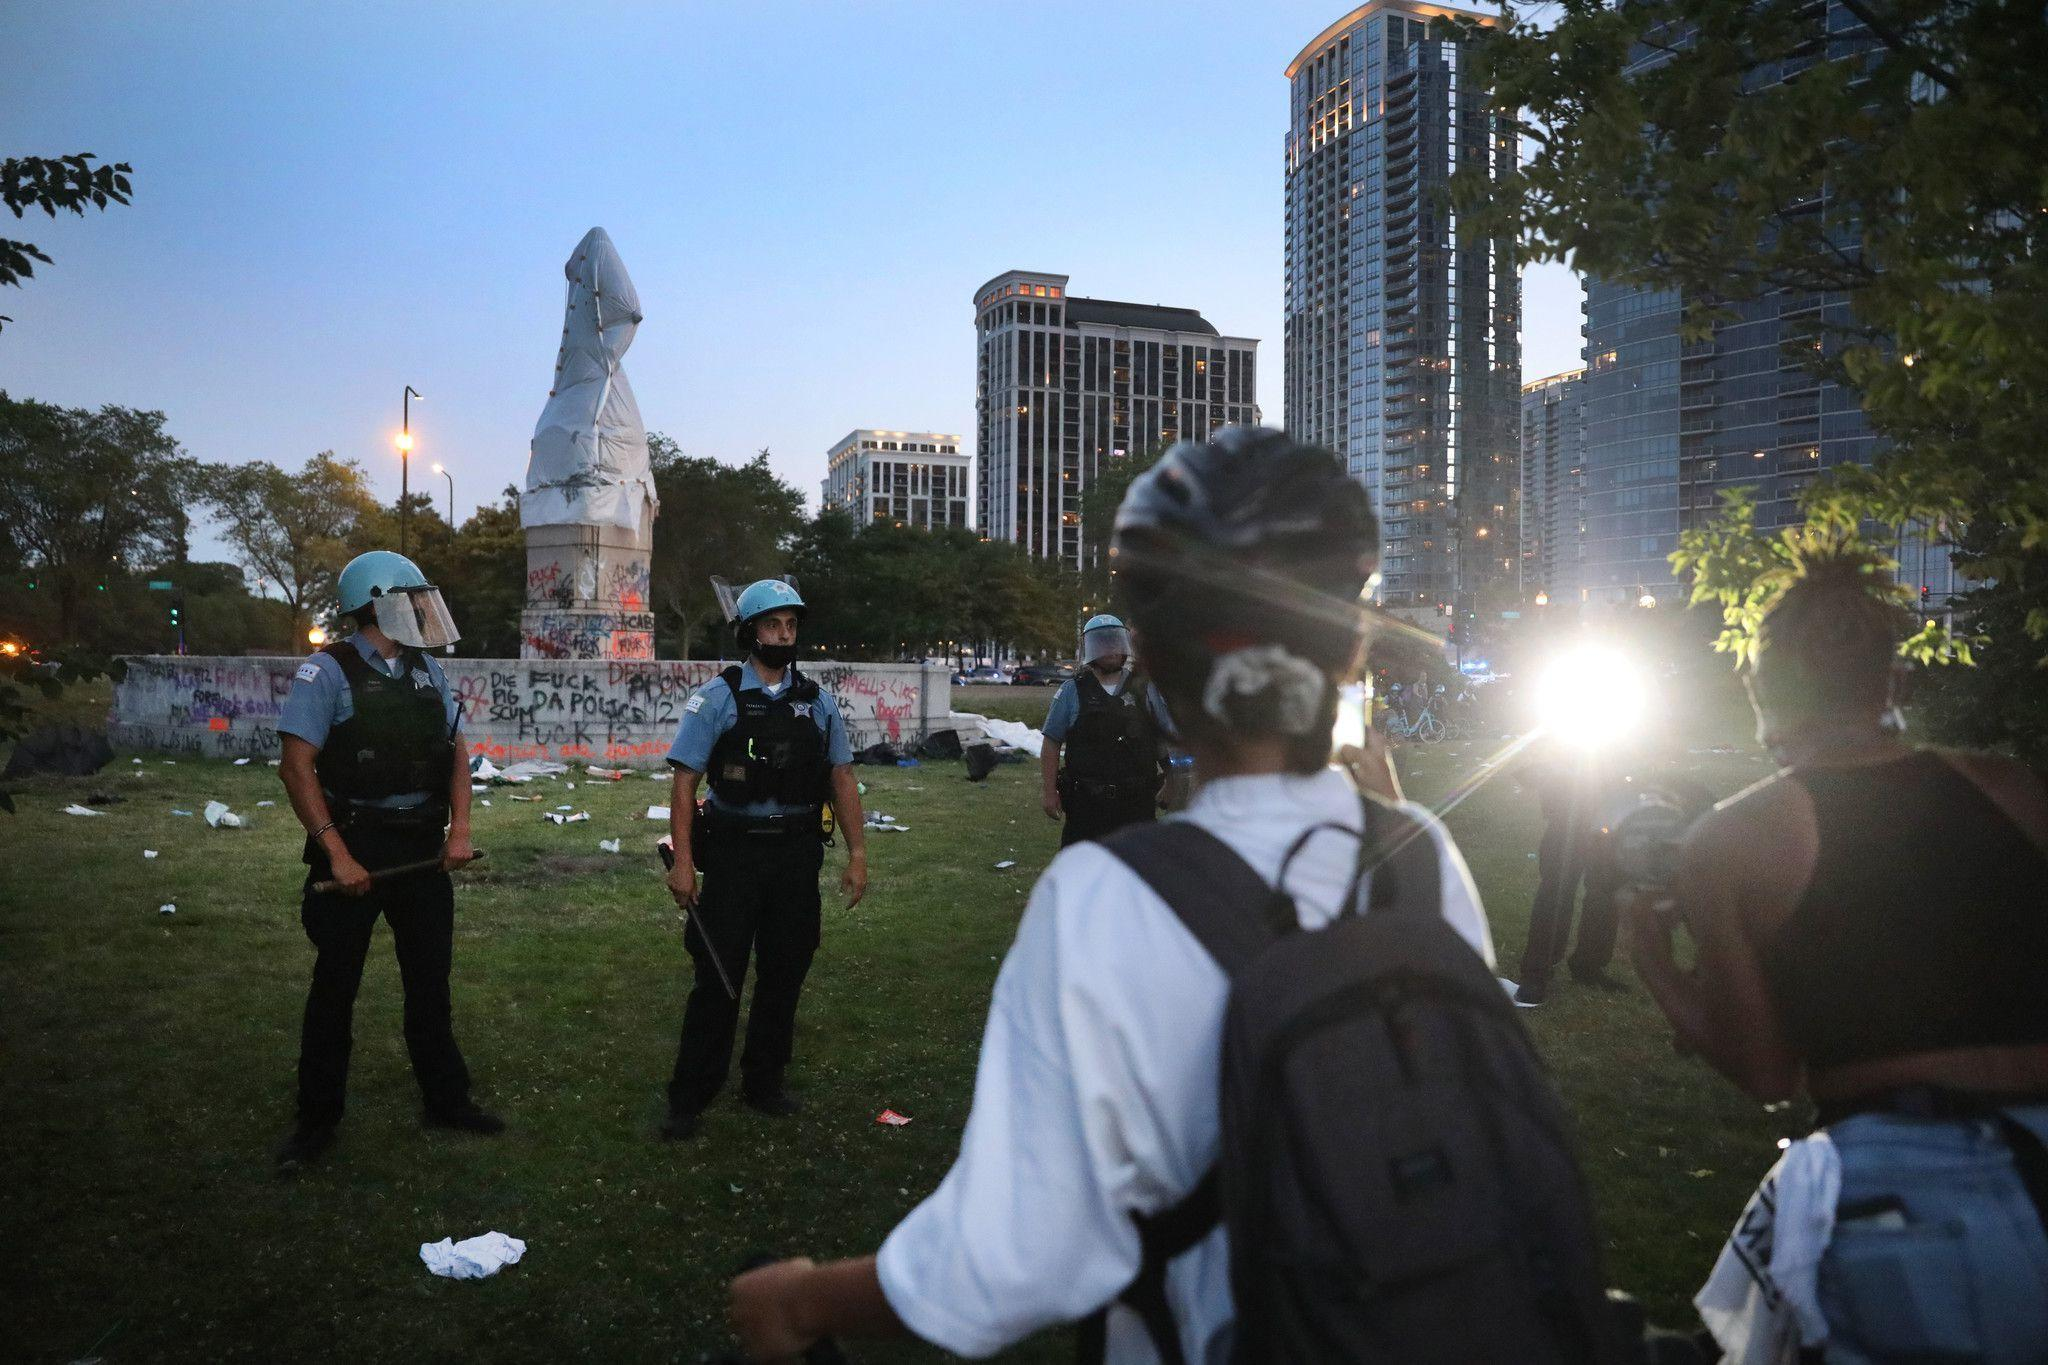 Police say attacks on officers at Grant Park protest appeared organized, top cop says officers will wear full protective gear